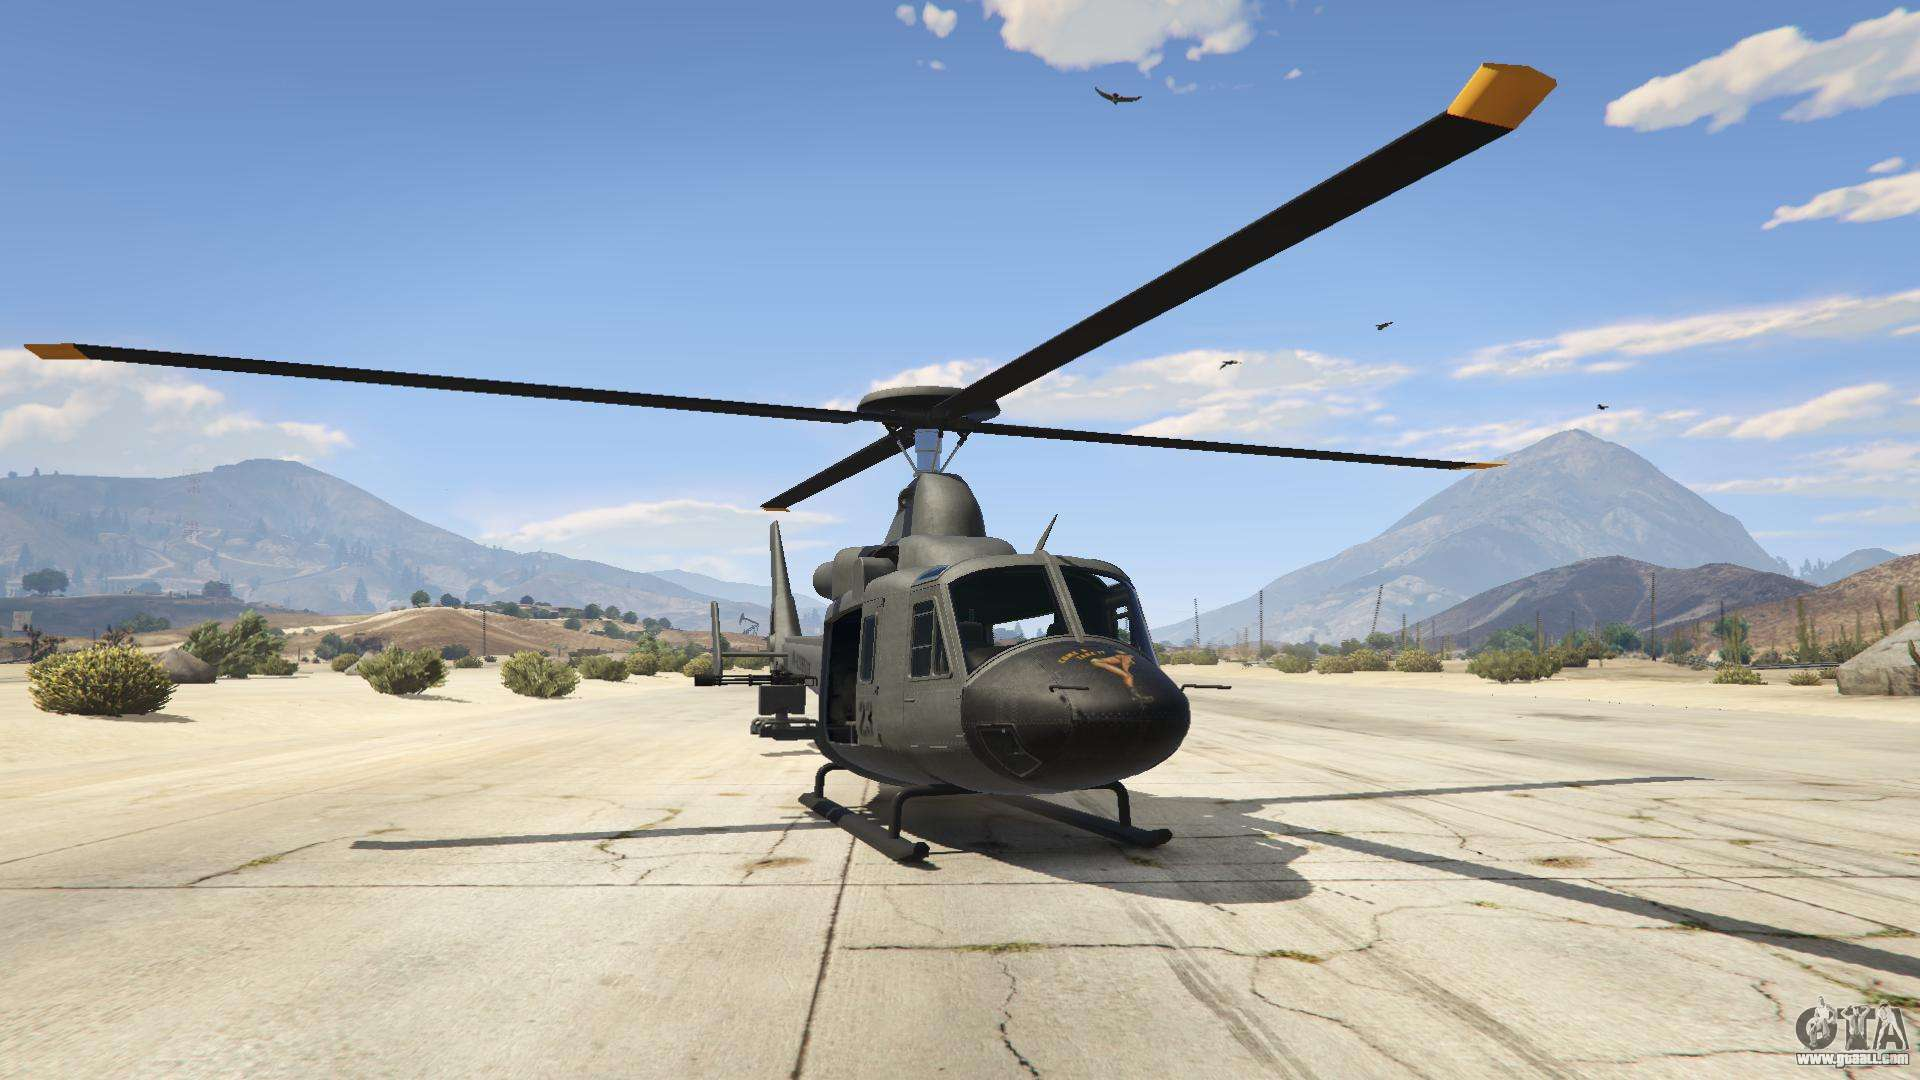 Buckingham Valkyrie MOD.0 from GTA 5 - screenshots ...